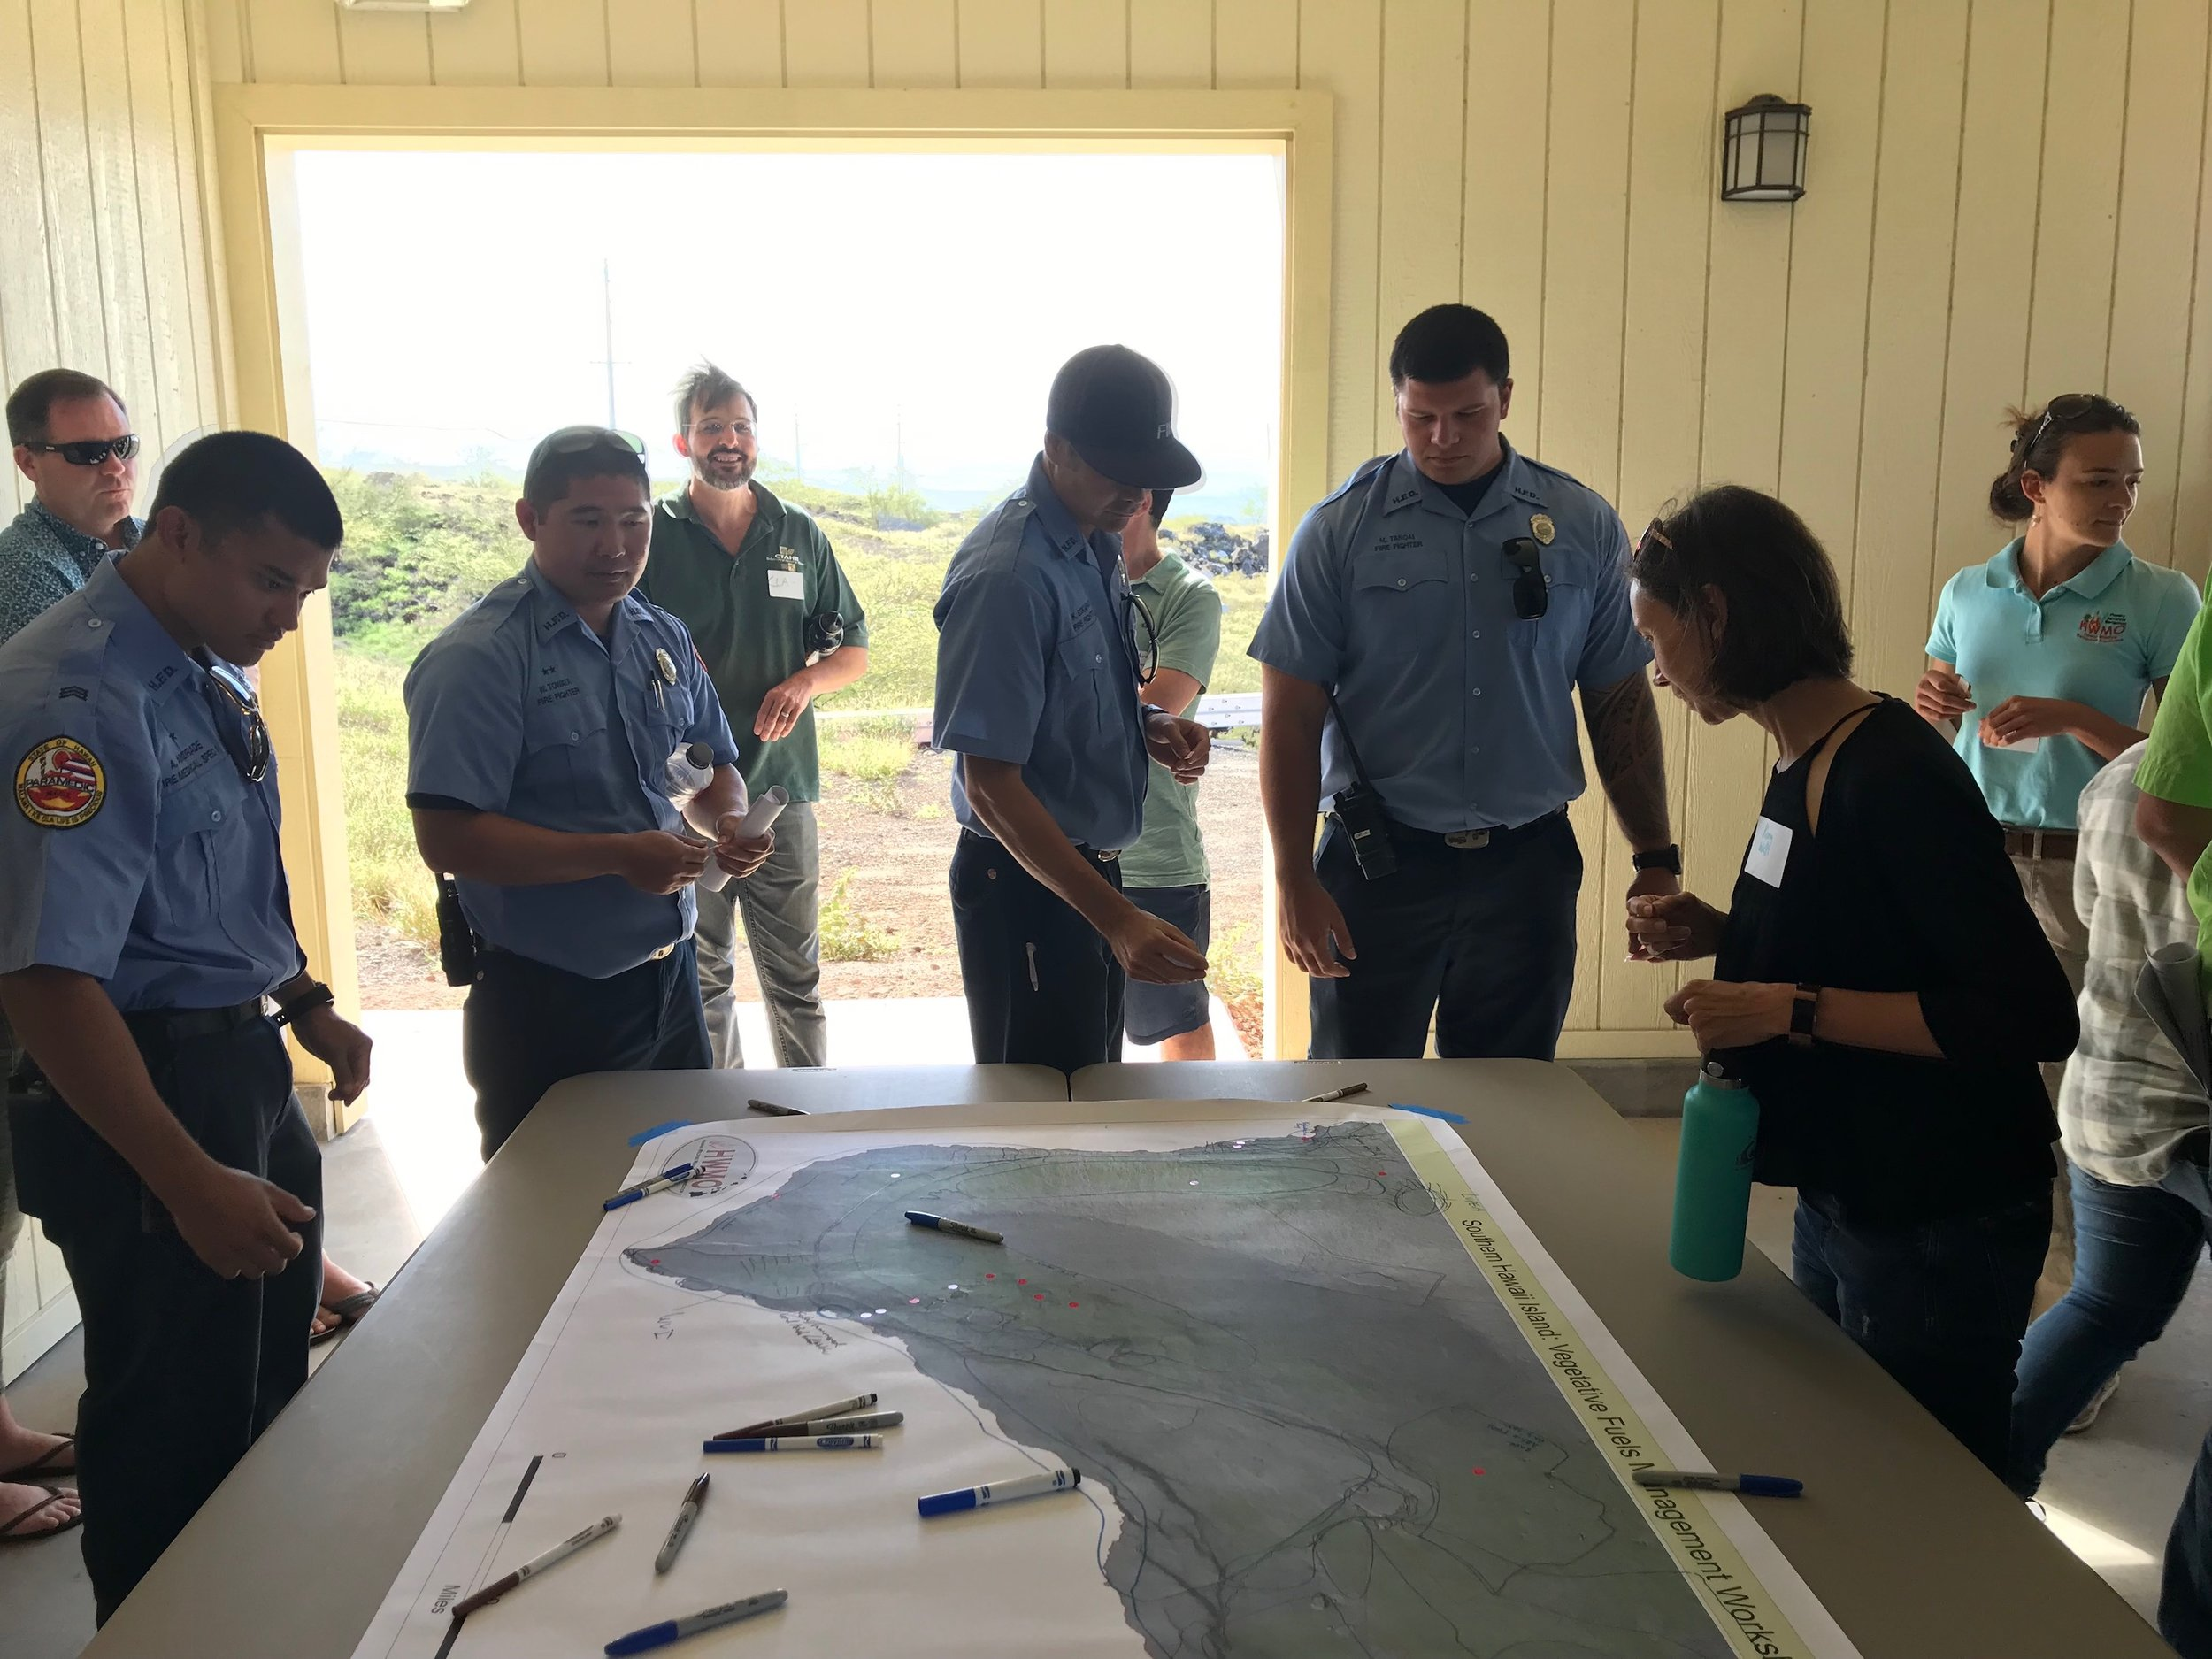 Hawaii Island Kailapa Vegetative Fuels Management Collaborative Action Planning Workshop_2_26_2019_51.jpg